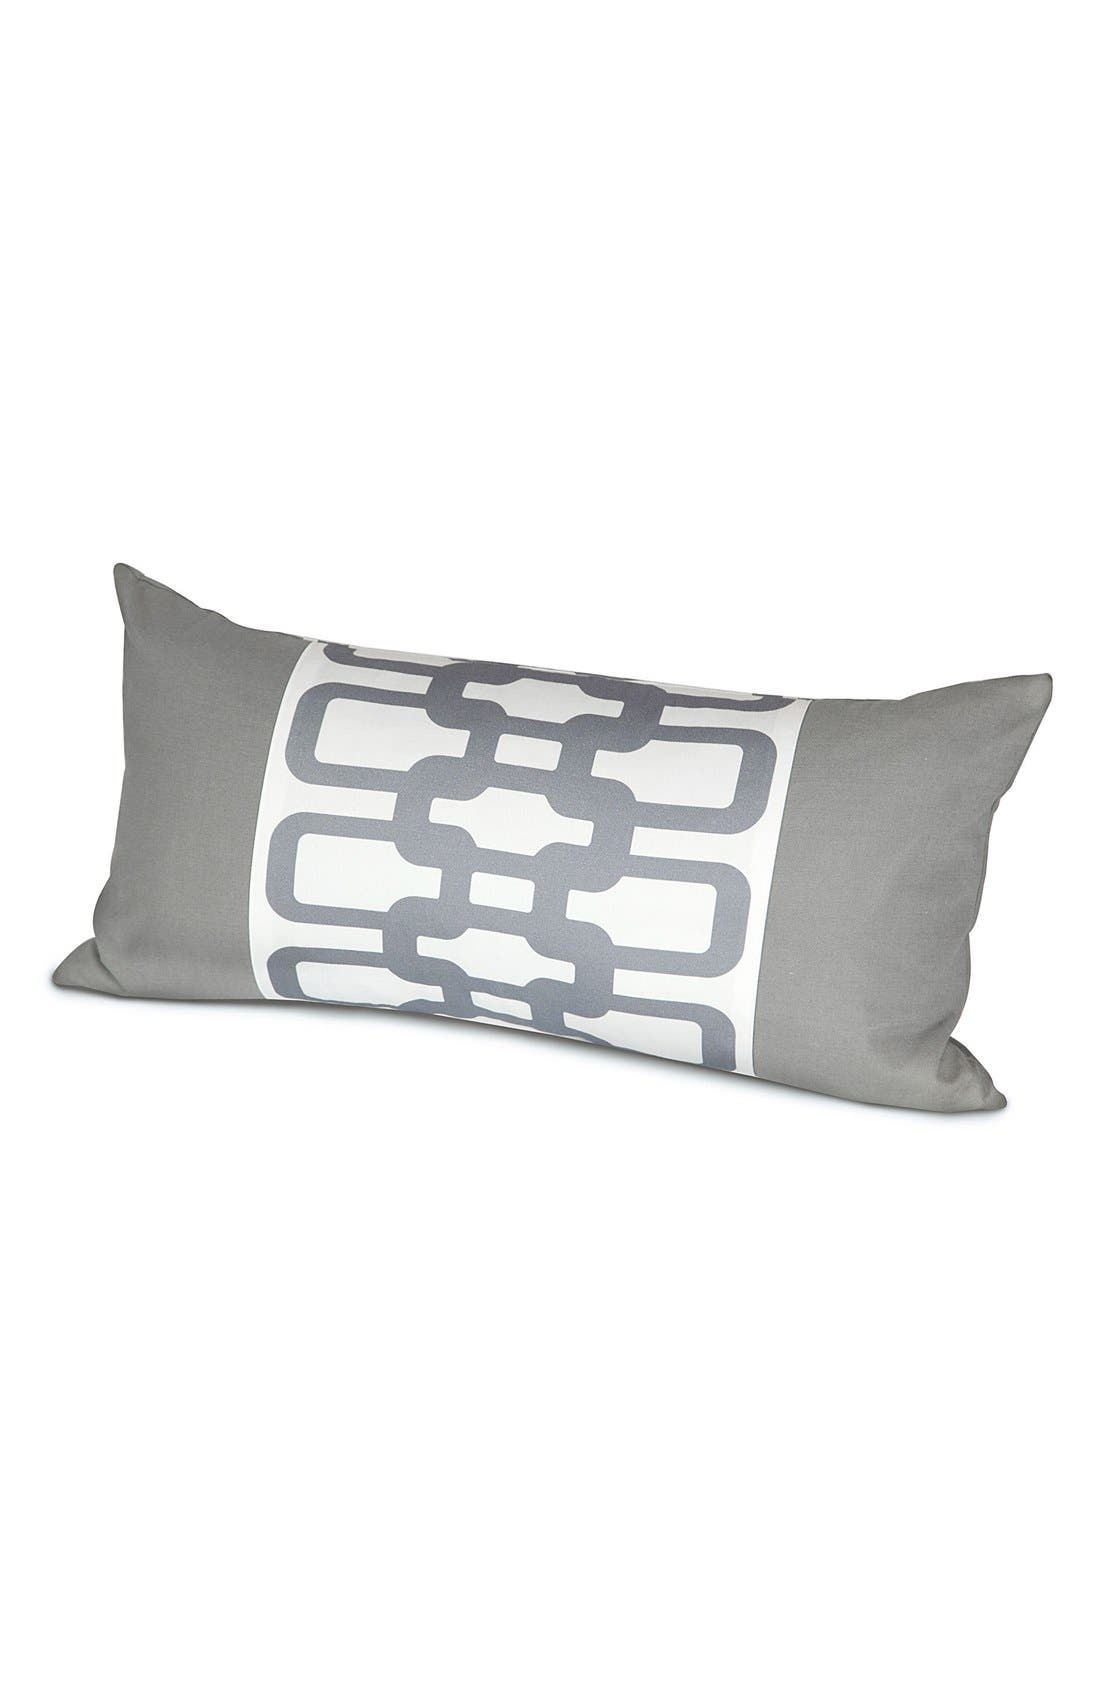 Alternate Image 1 Selected - Oilo Crib Pillow